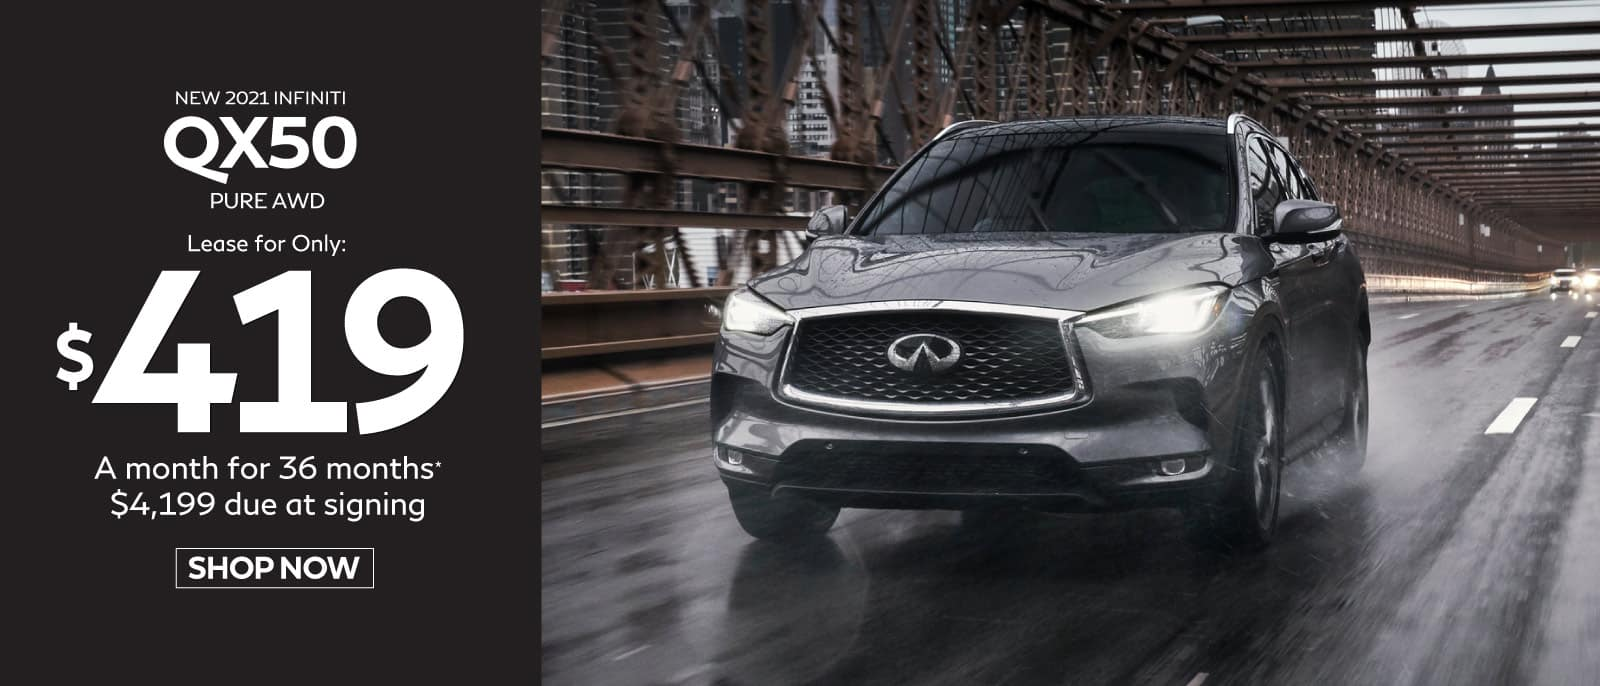 New 2021 INFINITI QX50 - Lease for only $419 a mo. for 36 mos.